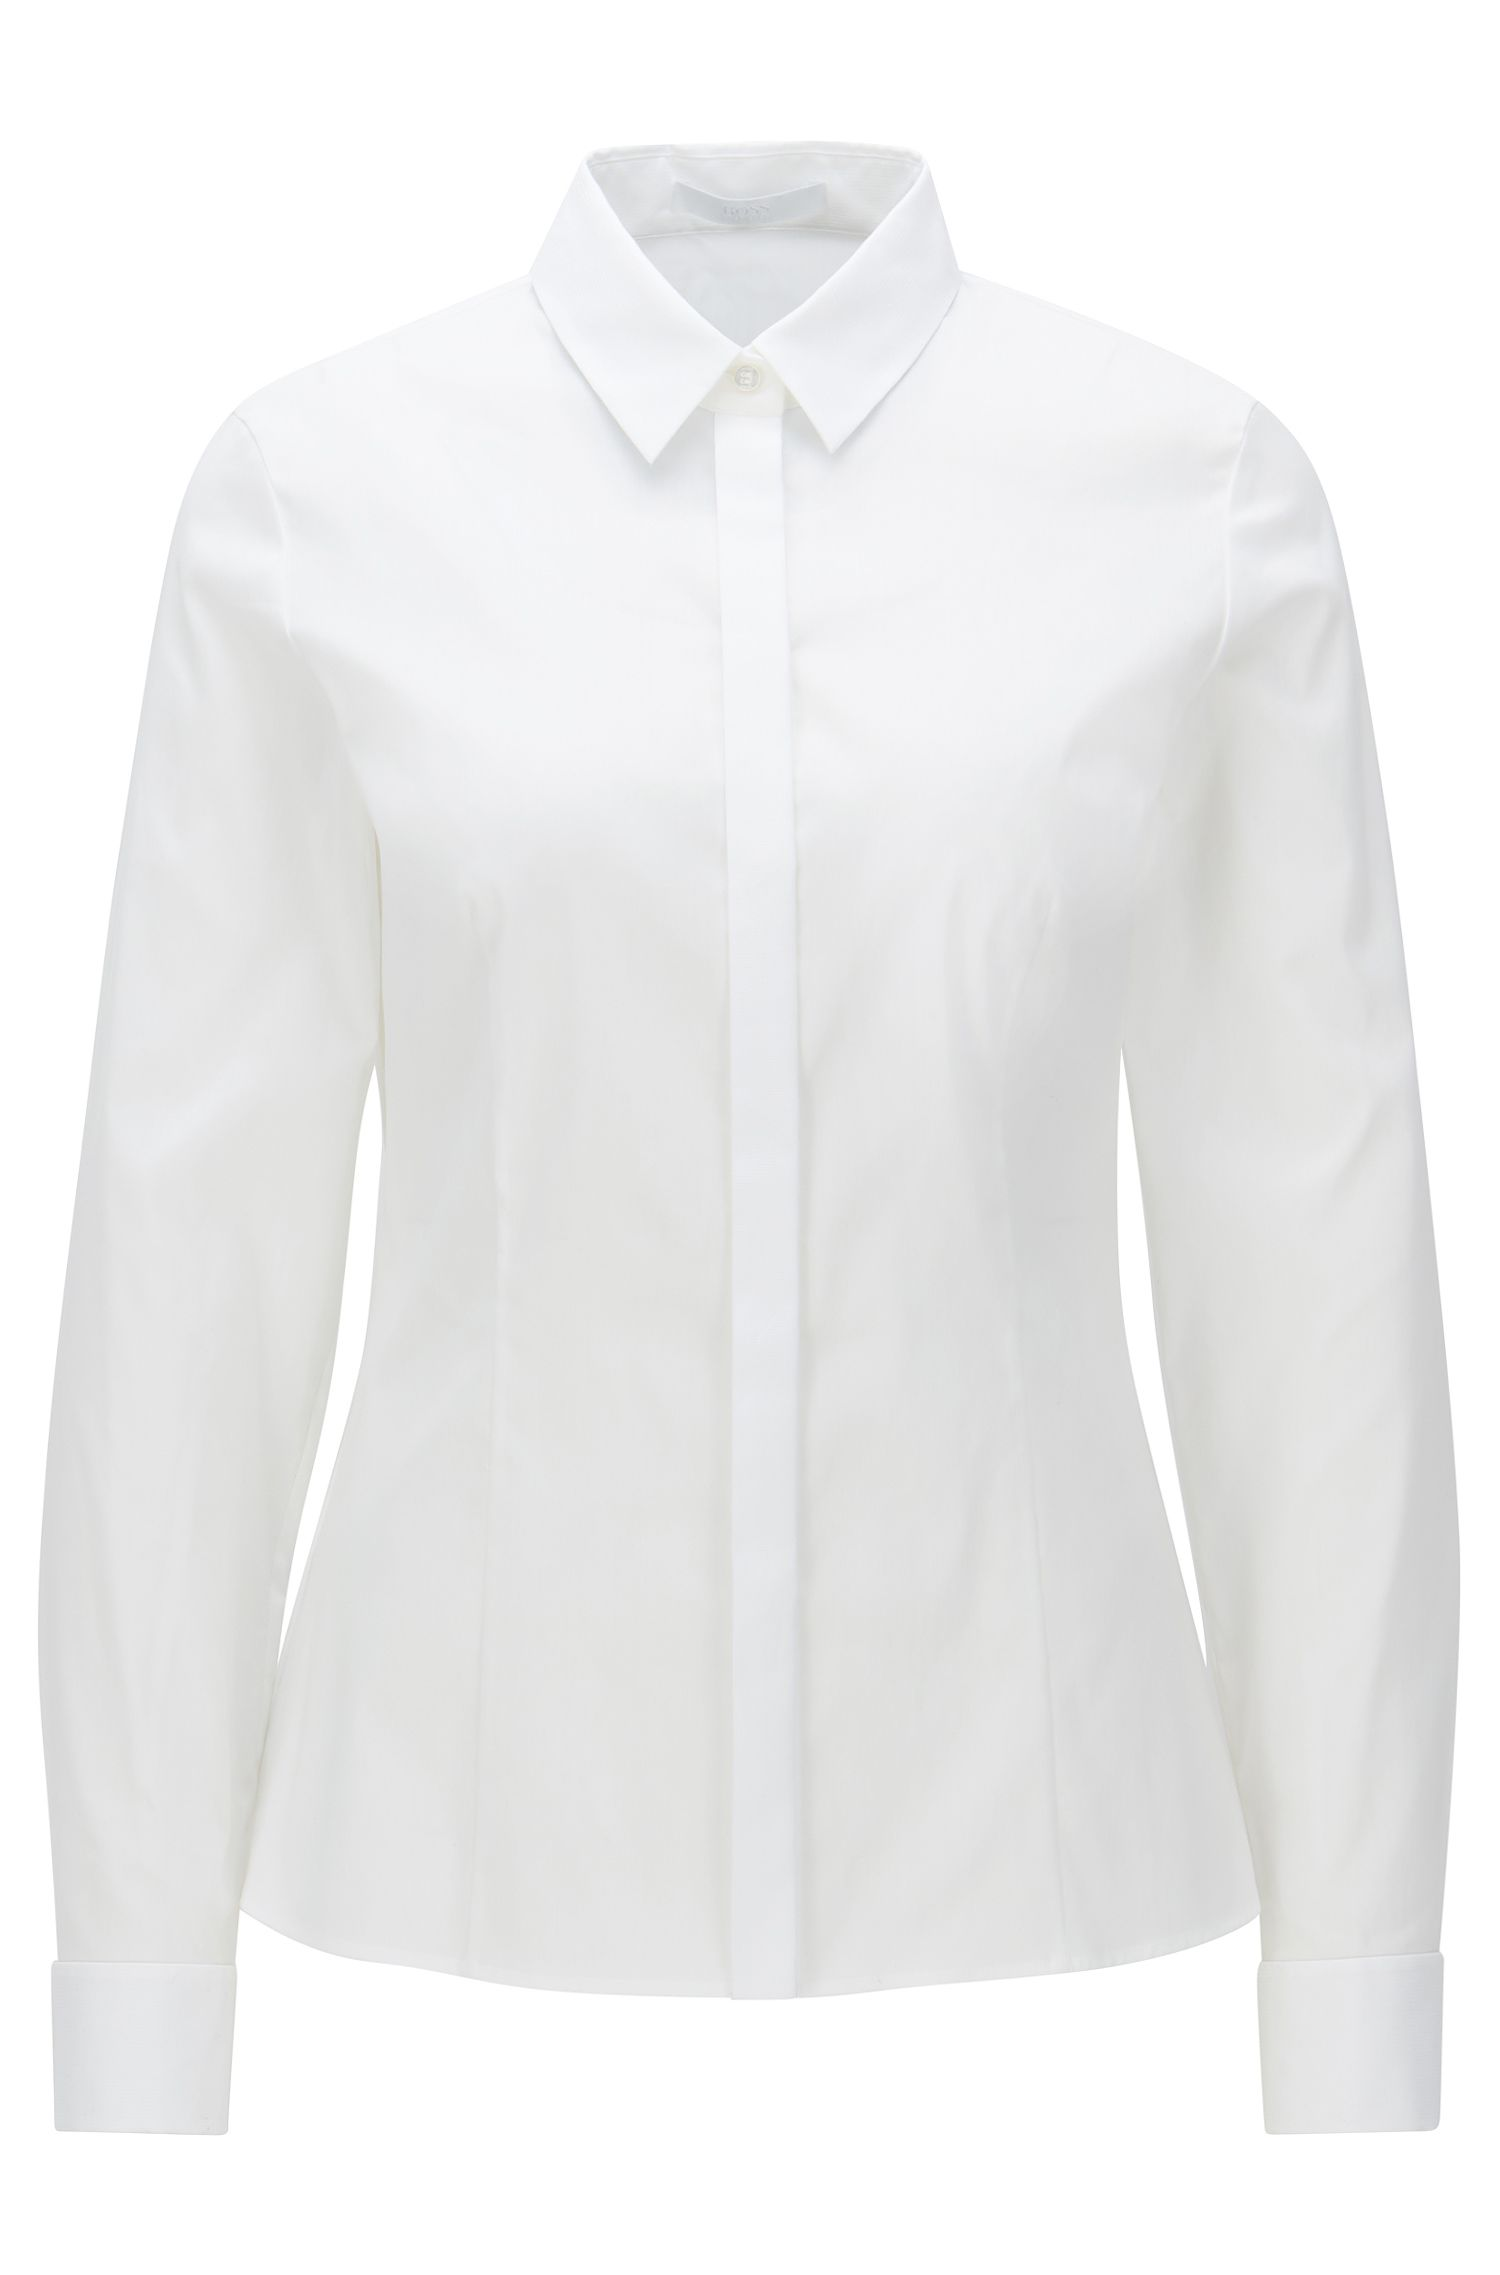 Cotton Blend Shirt | Bitara